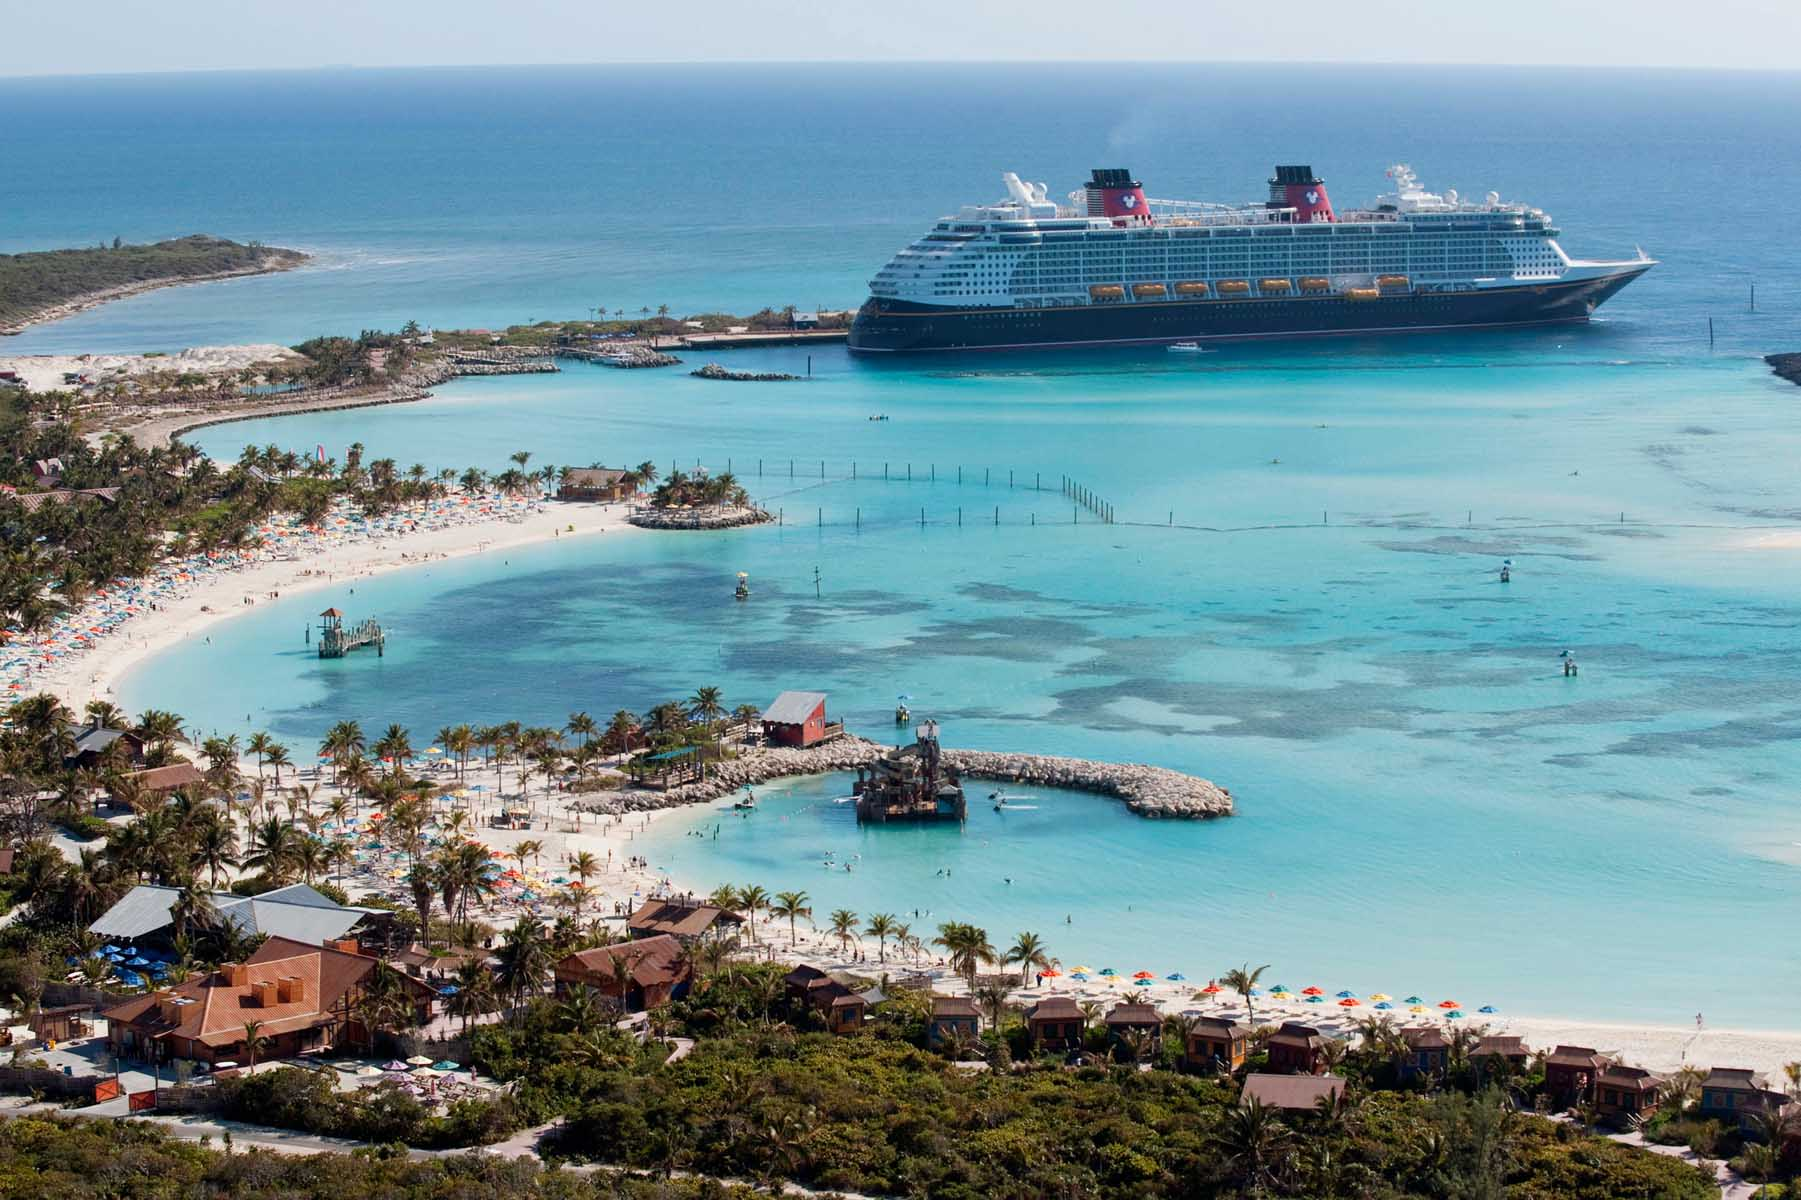 Disney Dream at Castaway Cay (pronounced key), Disney's private island in the Bahamas.